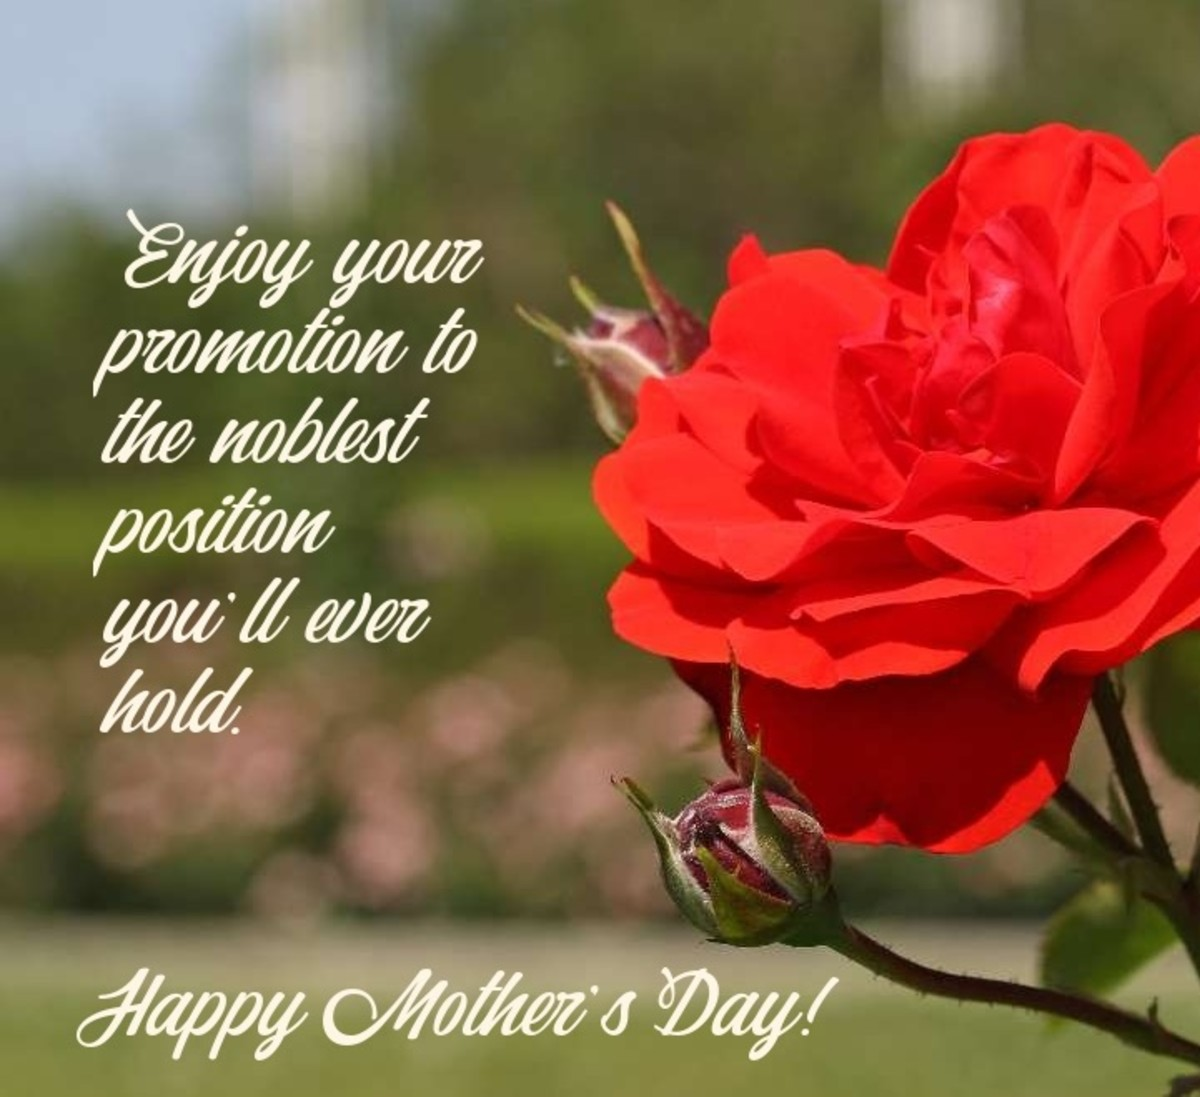 On your first Mother's Day, enjoy your promotion to the noblest position you'll ever hold.